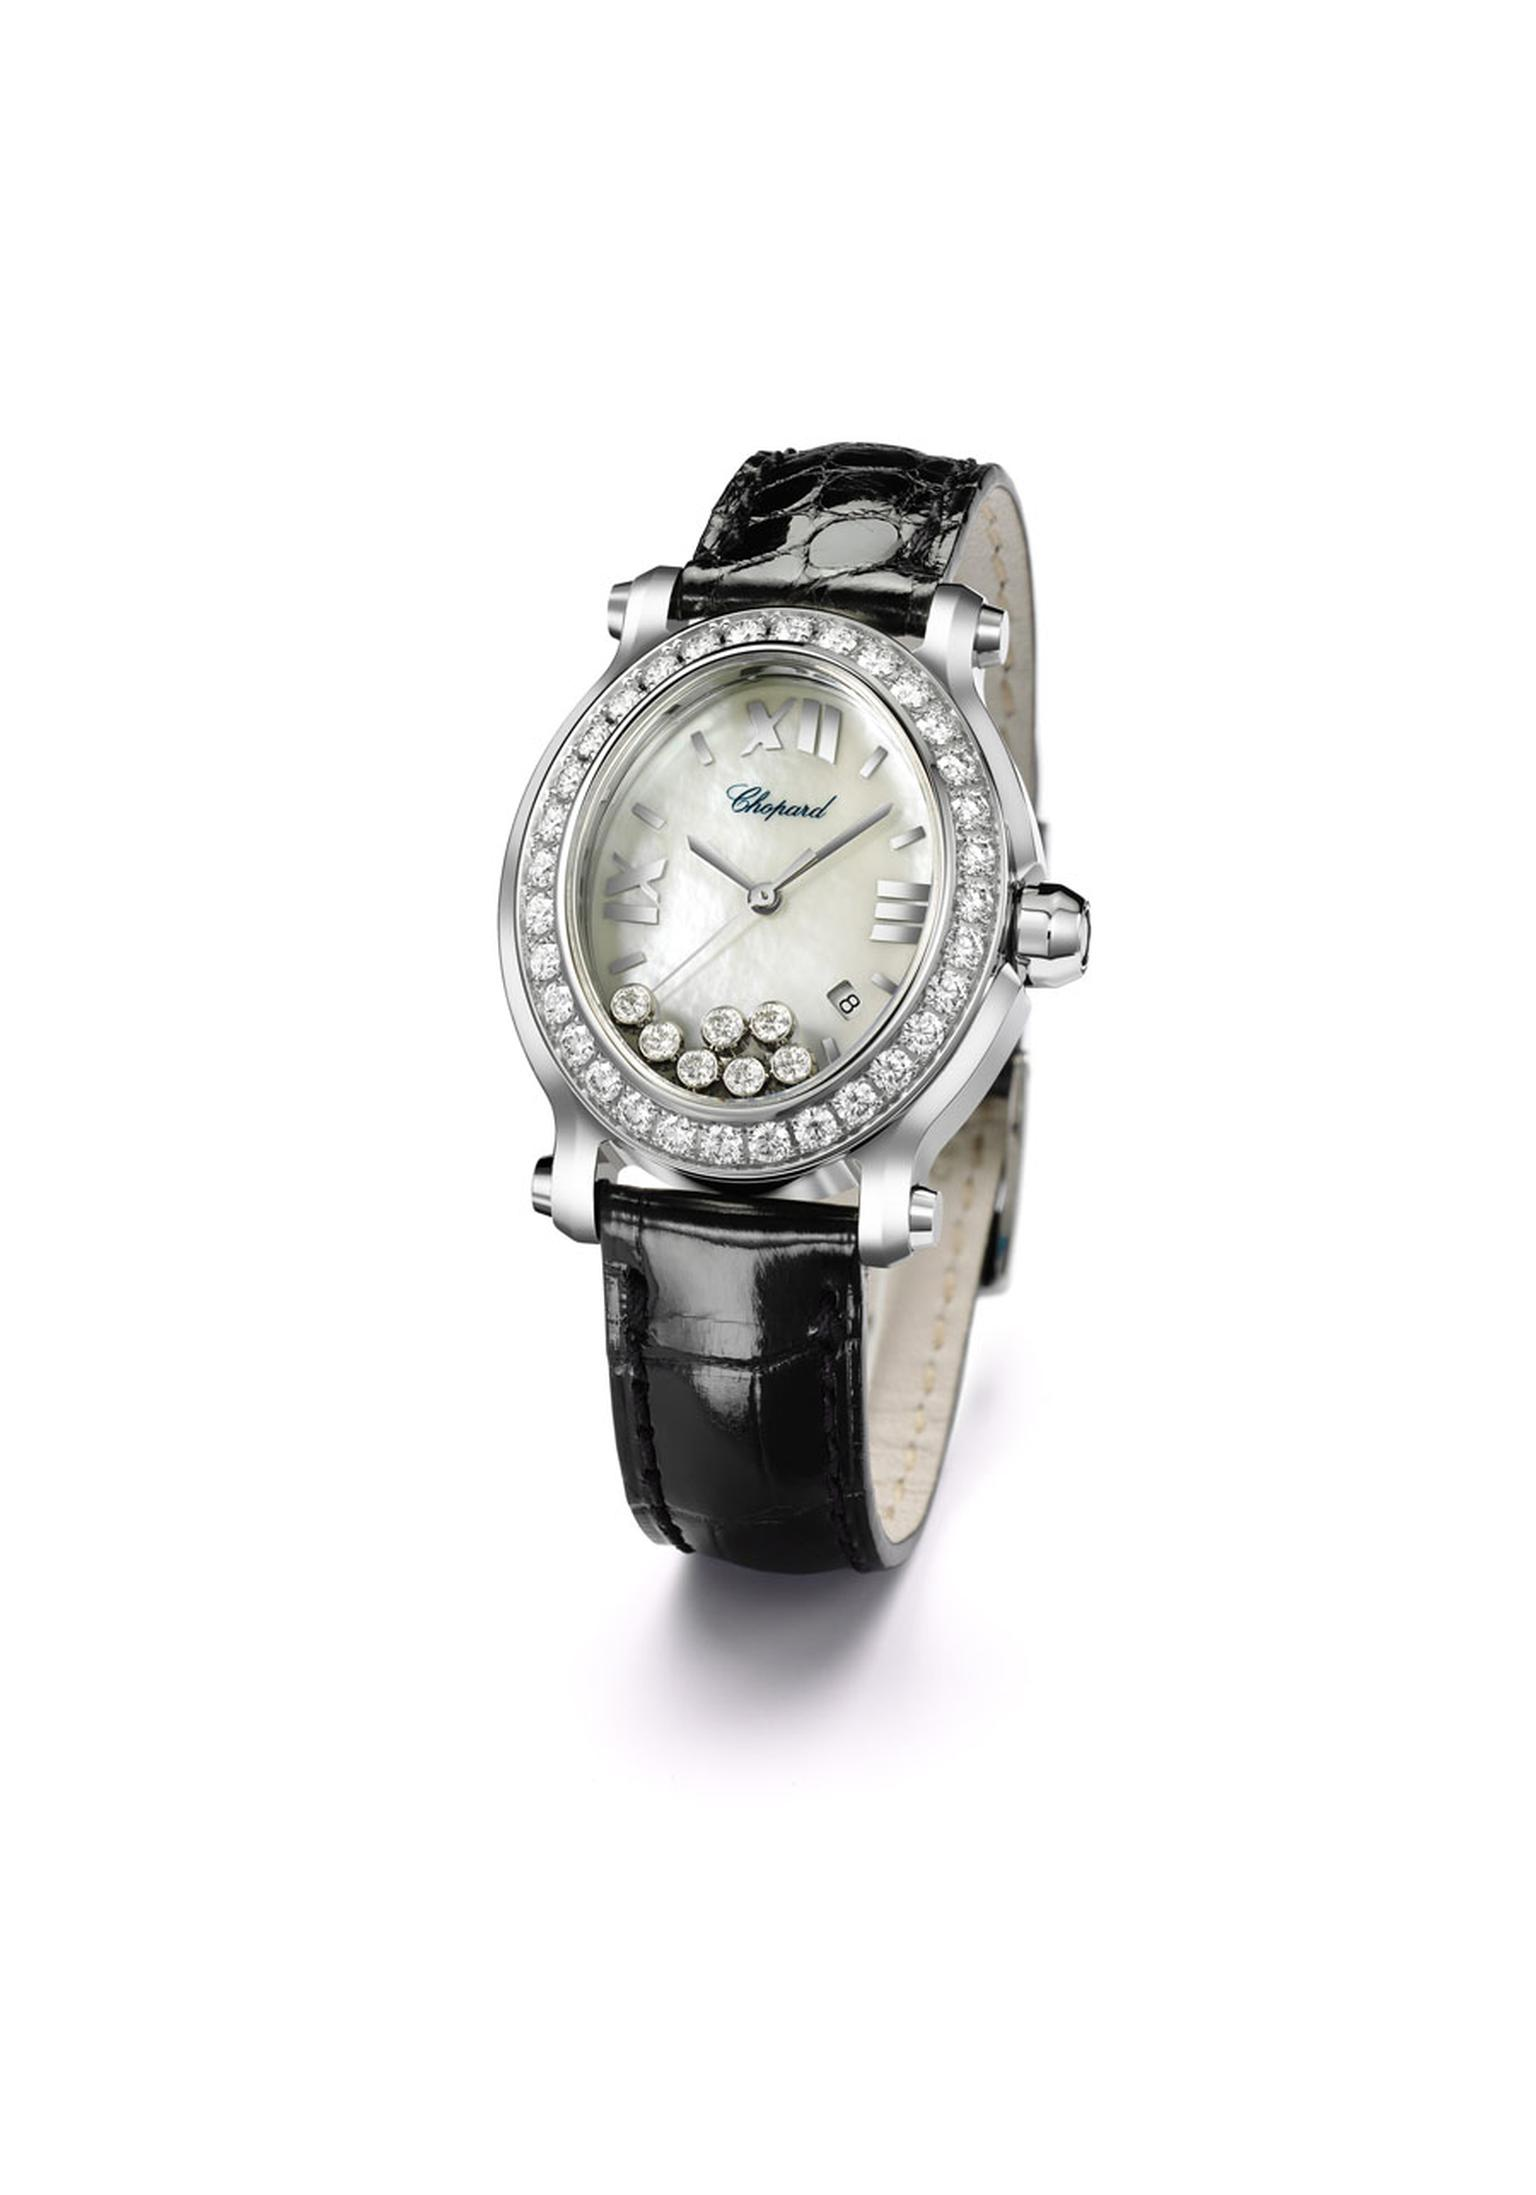 ChopardHappySport14